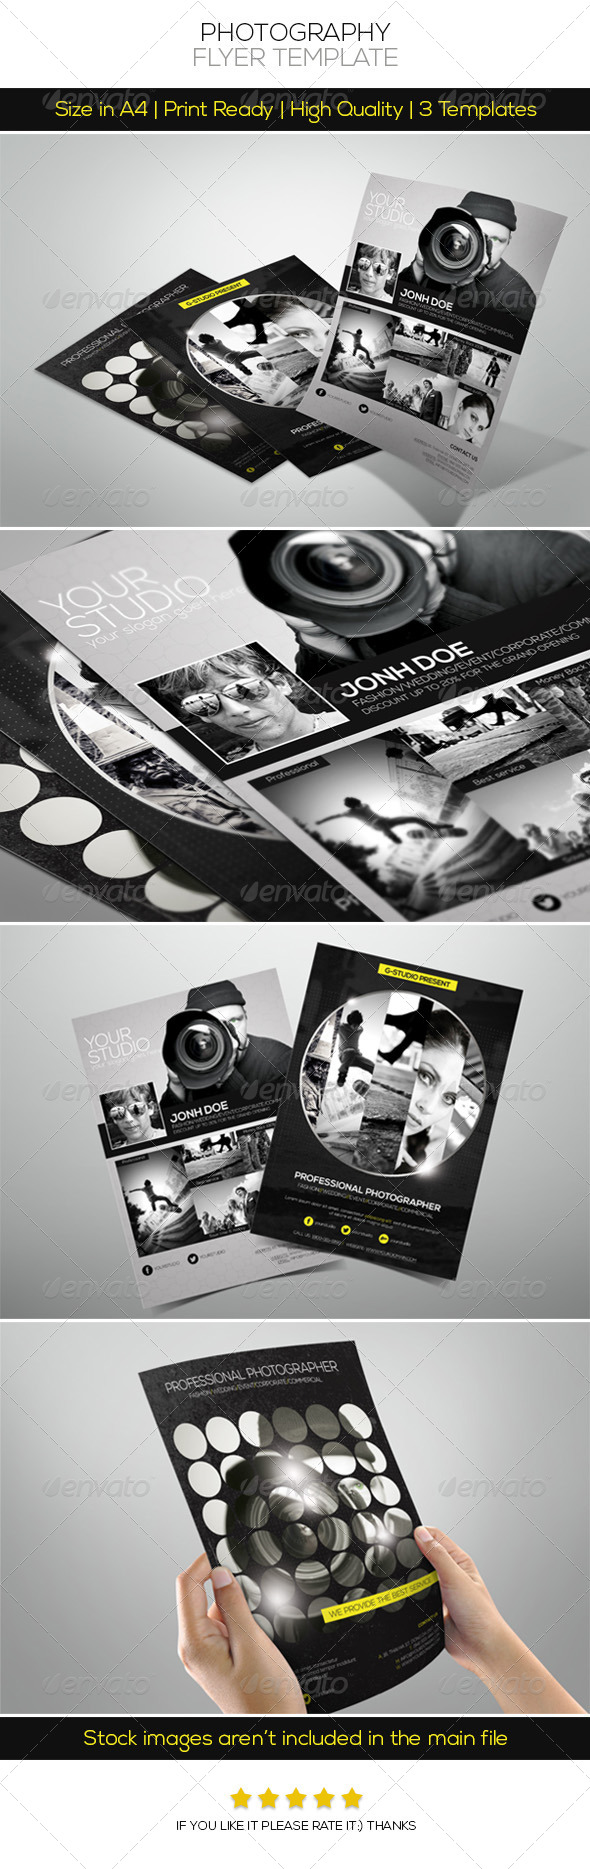 Premium Photography Flyer - Corporate Flyers